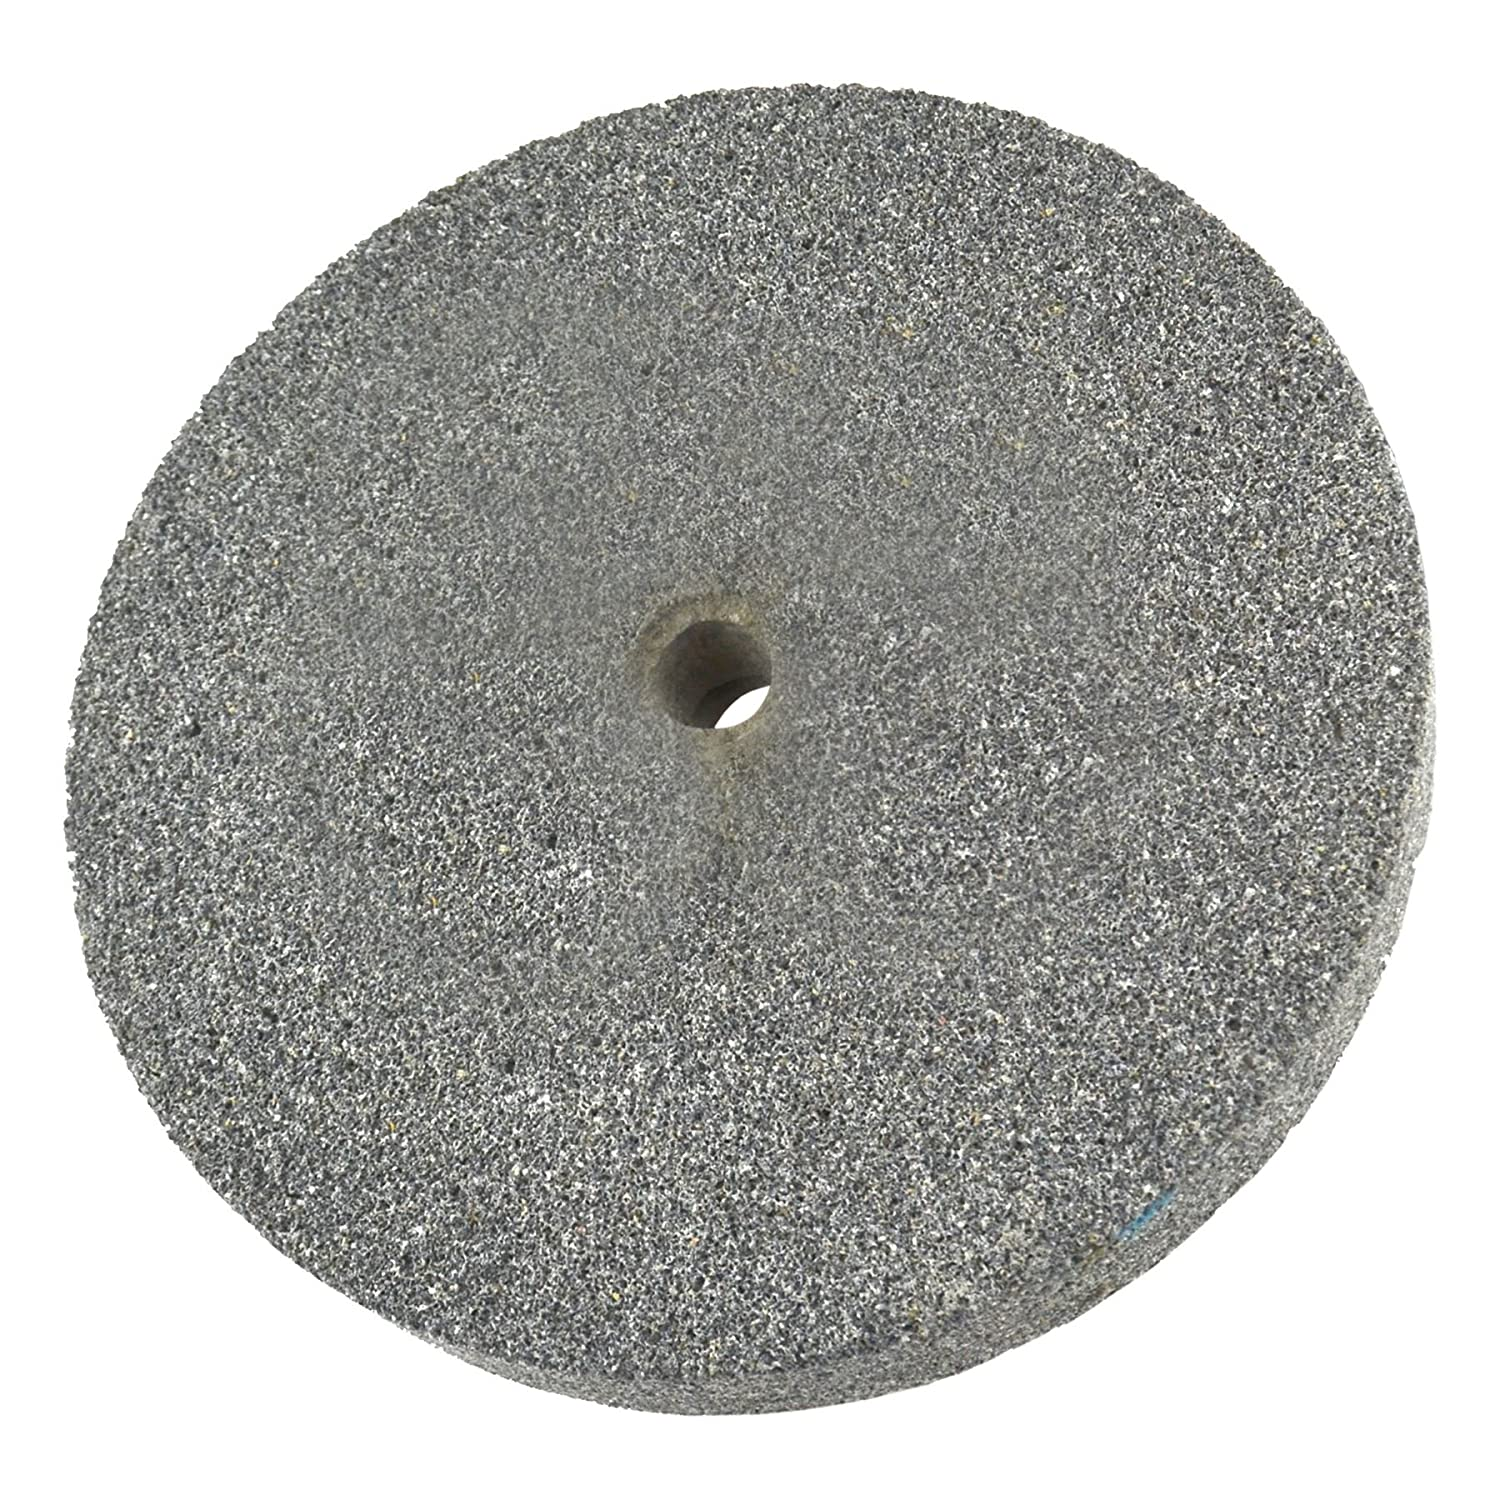 Coarse Grinding Wheel Bench Grinder Stone 36 Grit 19mm Thick TE864 6 150mm